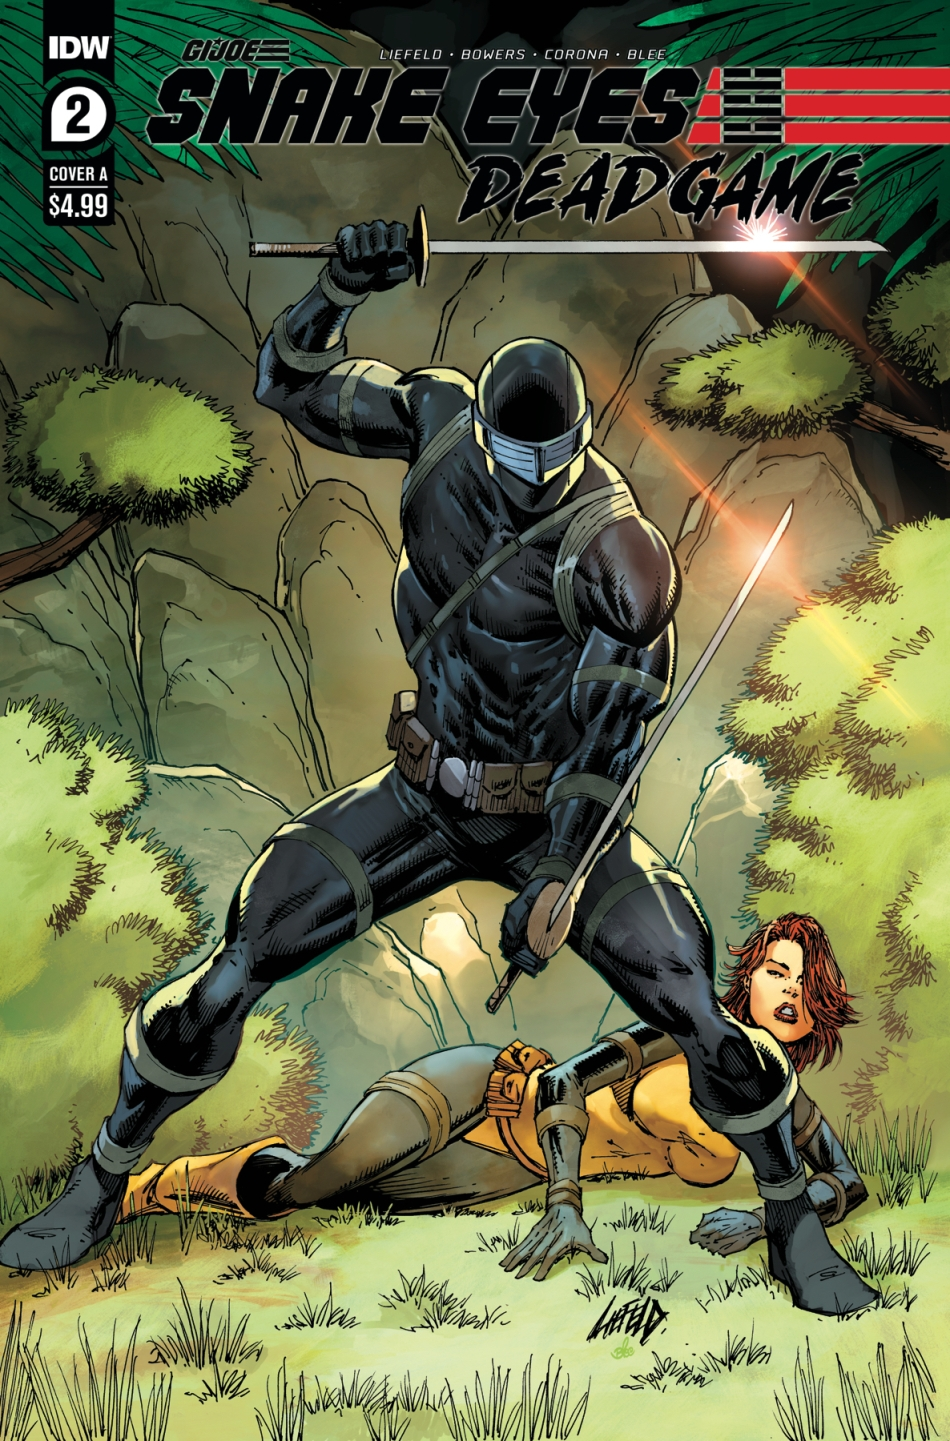 IDW Publishing Snake Eyes Dead Game 2 Liefeld - Surveillance Port